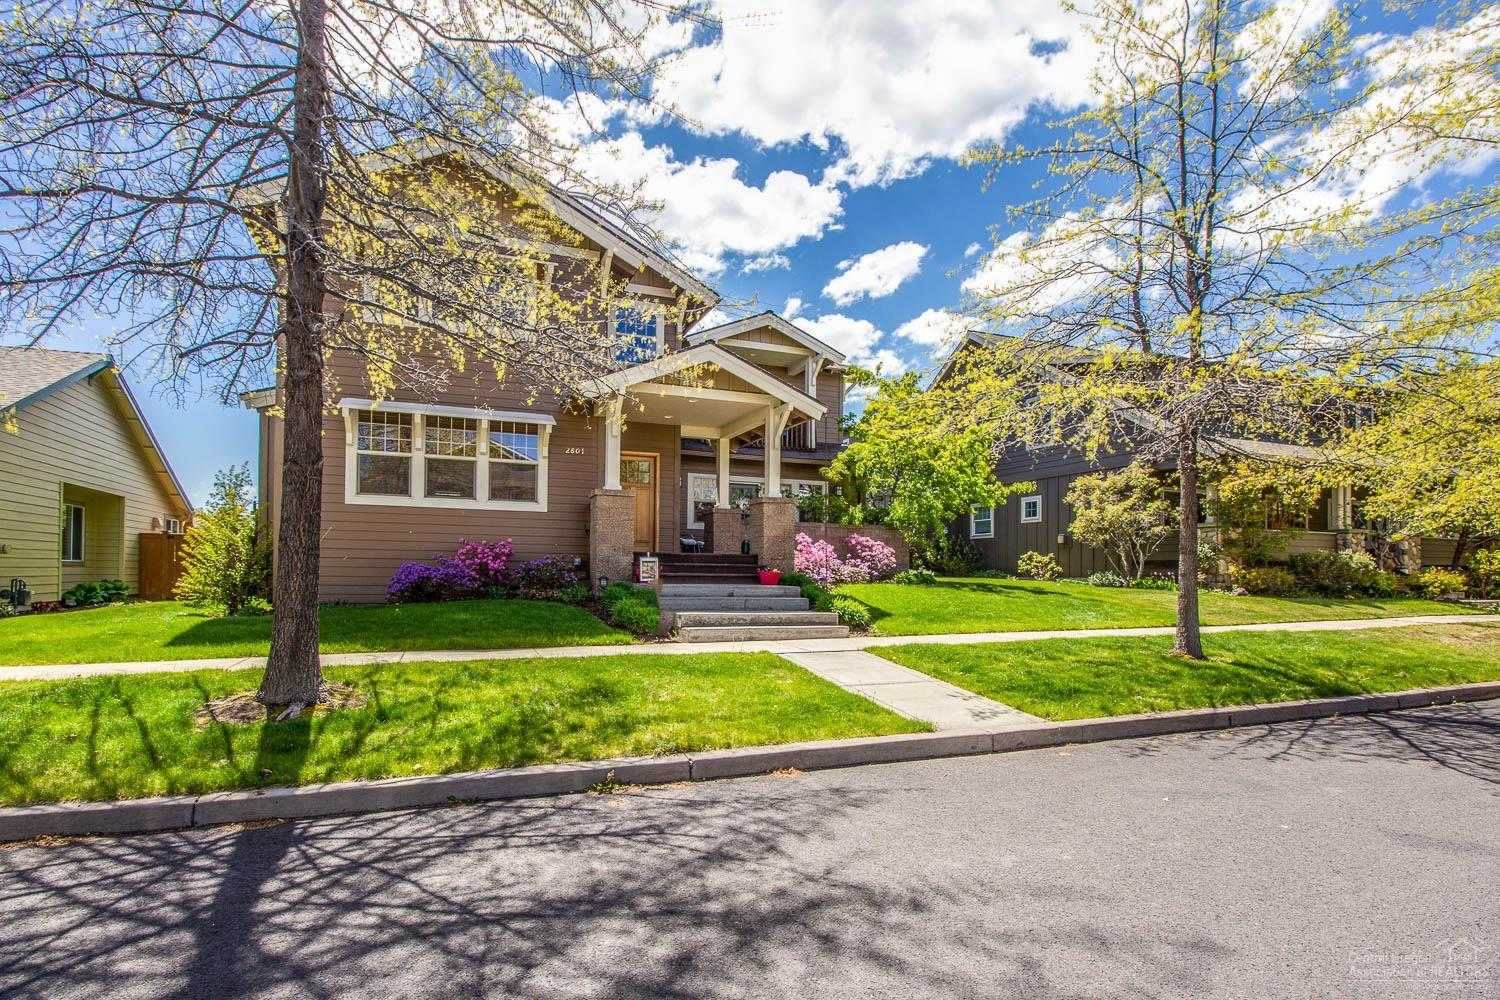 $475,000 - 5Br/3Ba -  for Sale in Bend